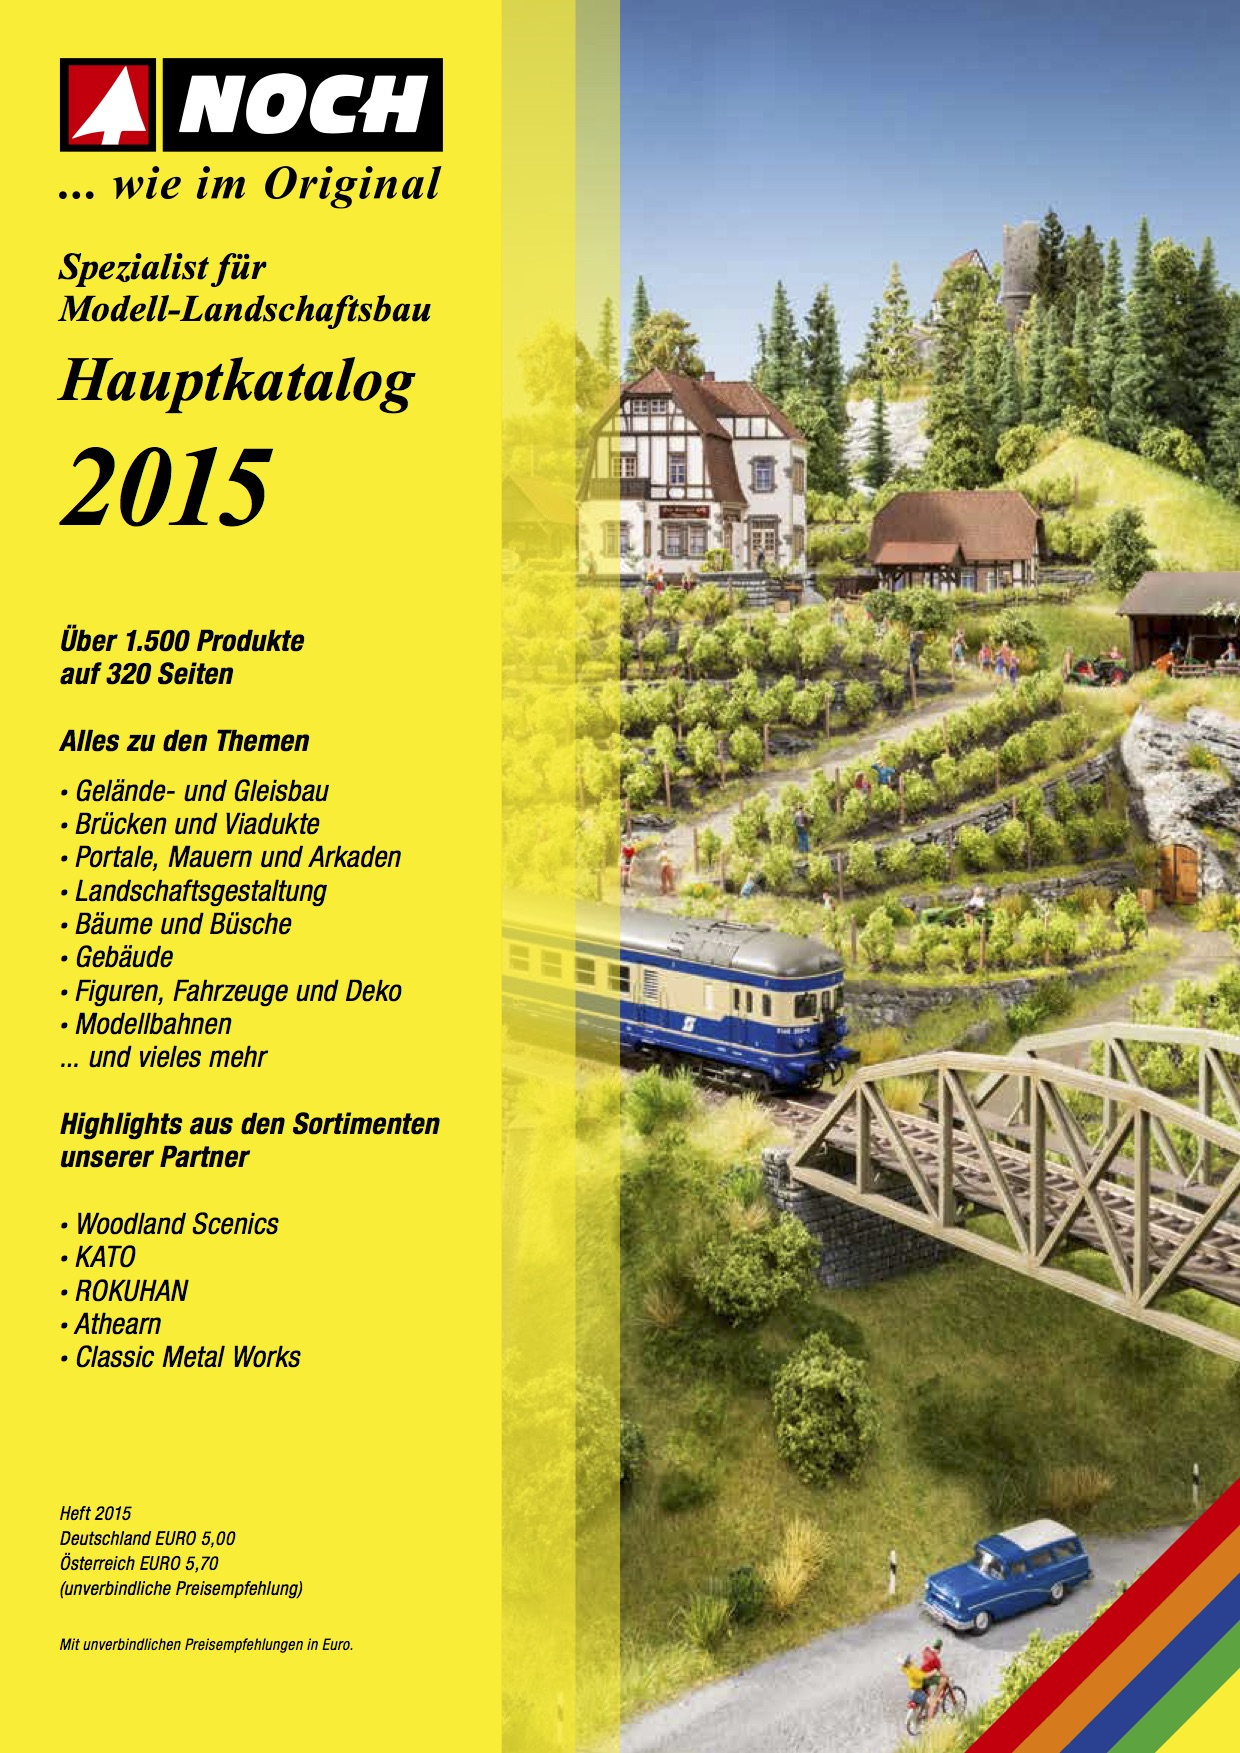 NOCH Katalog (Catalogue) 2015